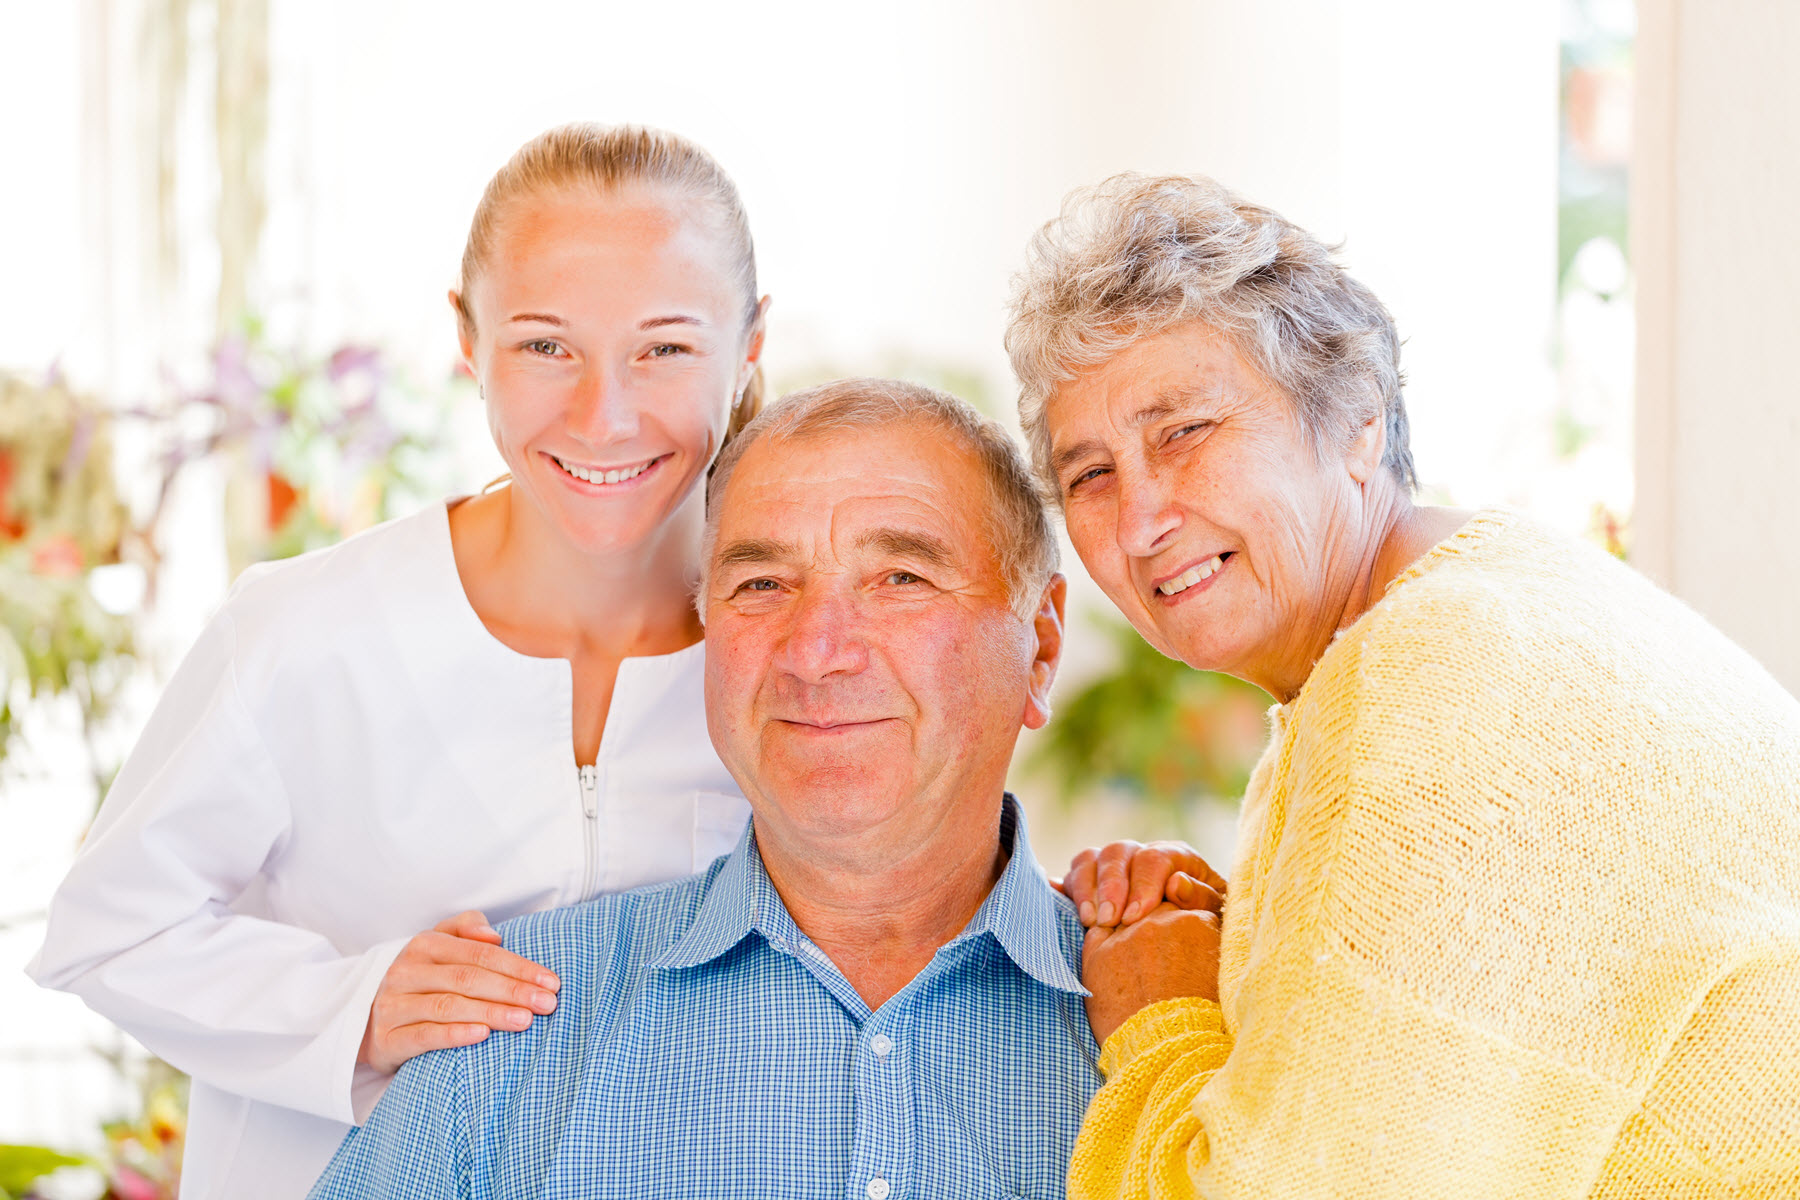 Homecare in Glendale  AZ: Capture Memories with Your Senior